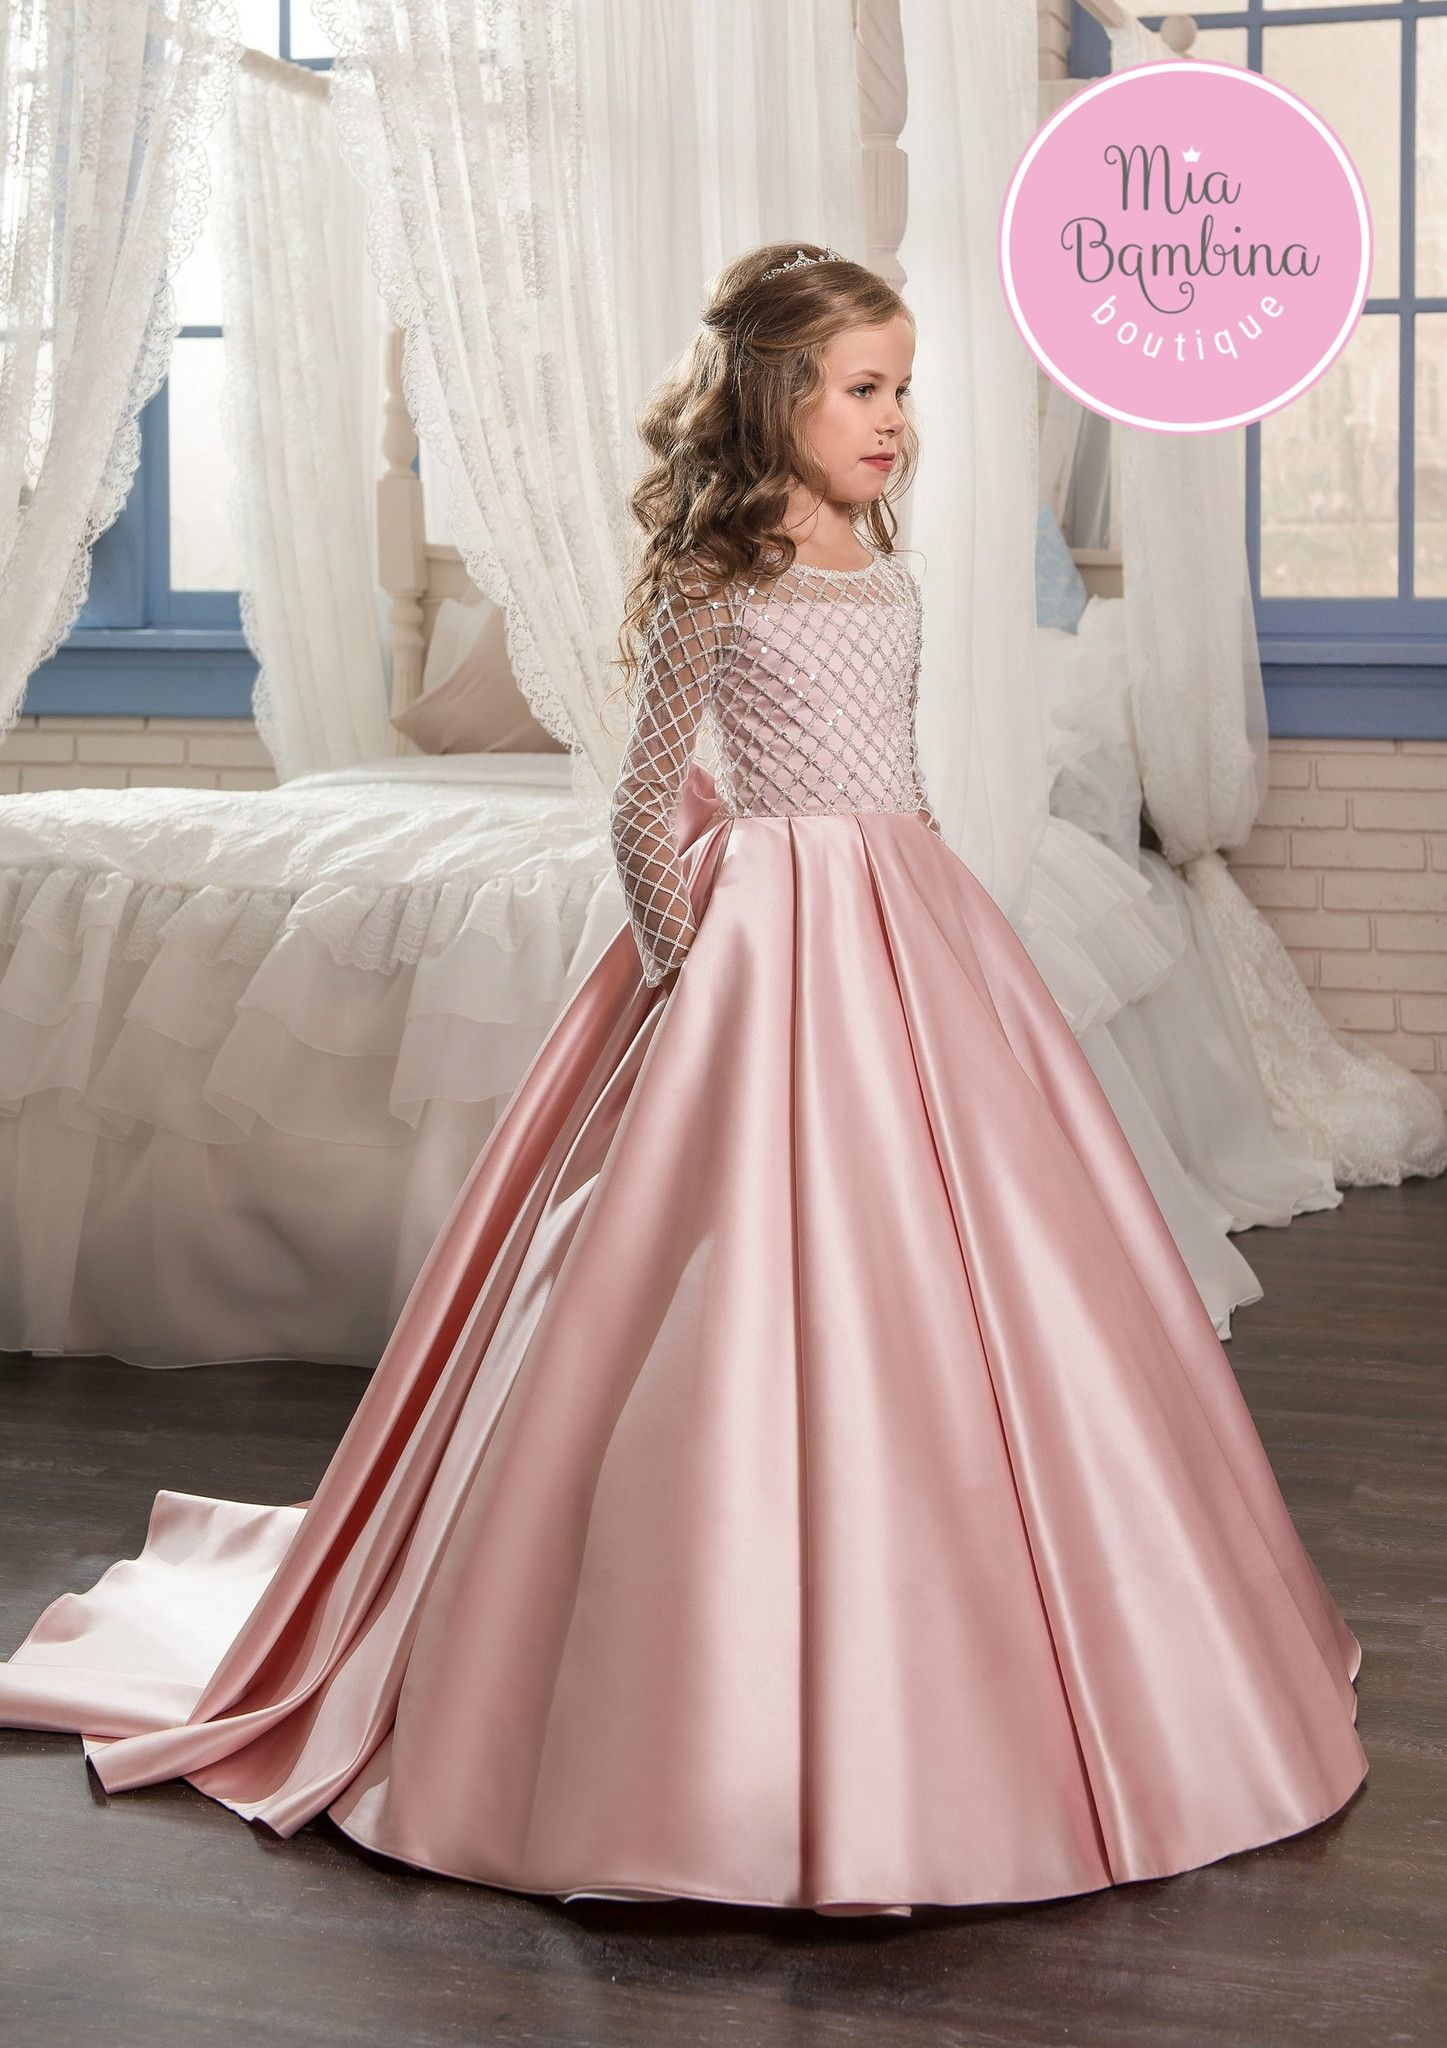 c87857da2 Flower Girl Dresses Shop Toronto Flower Girl Dresses at Girls Dress ...